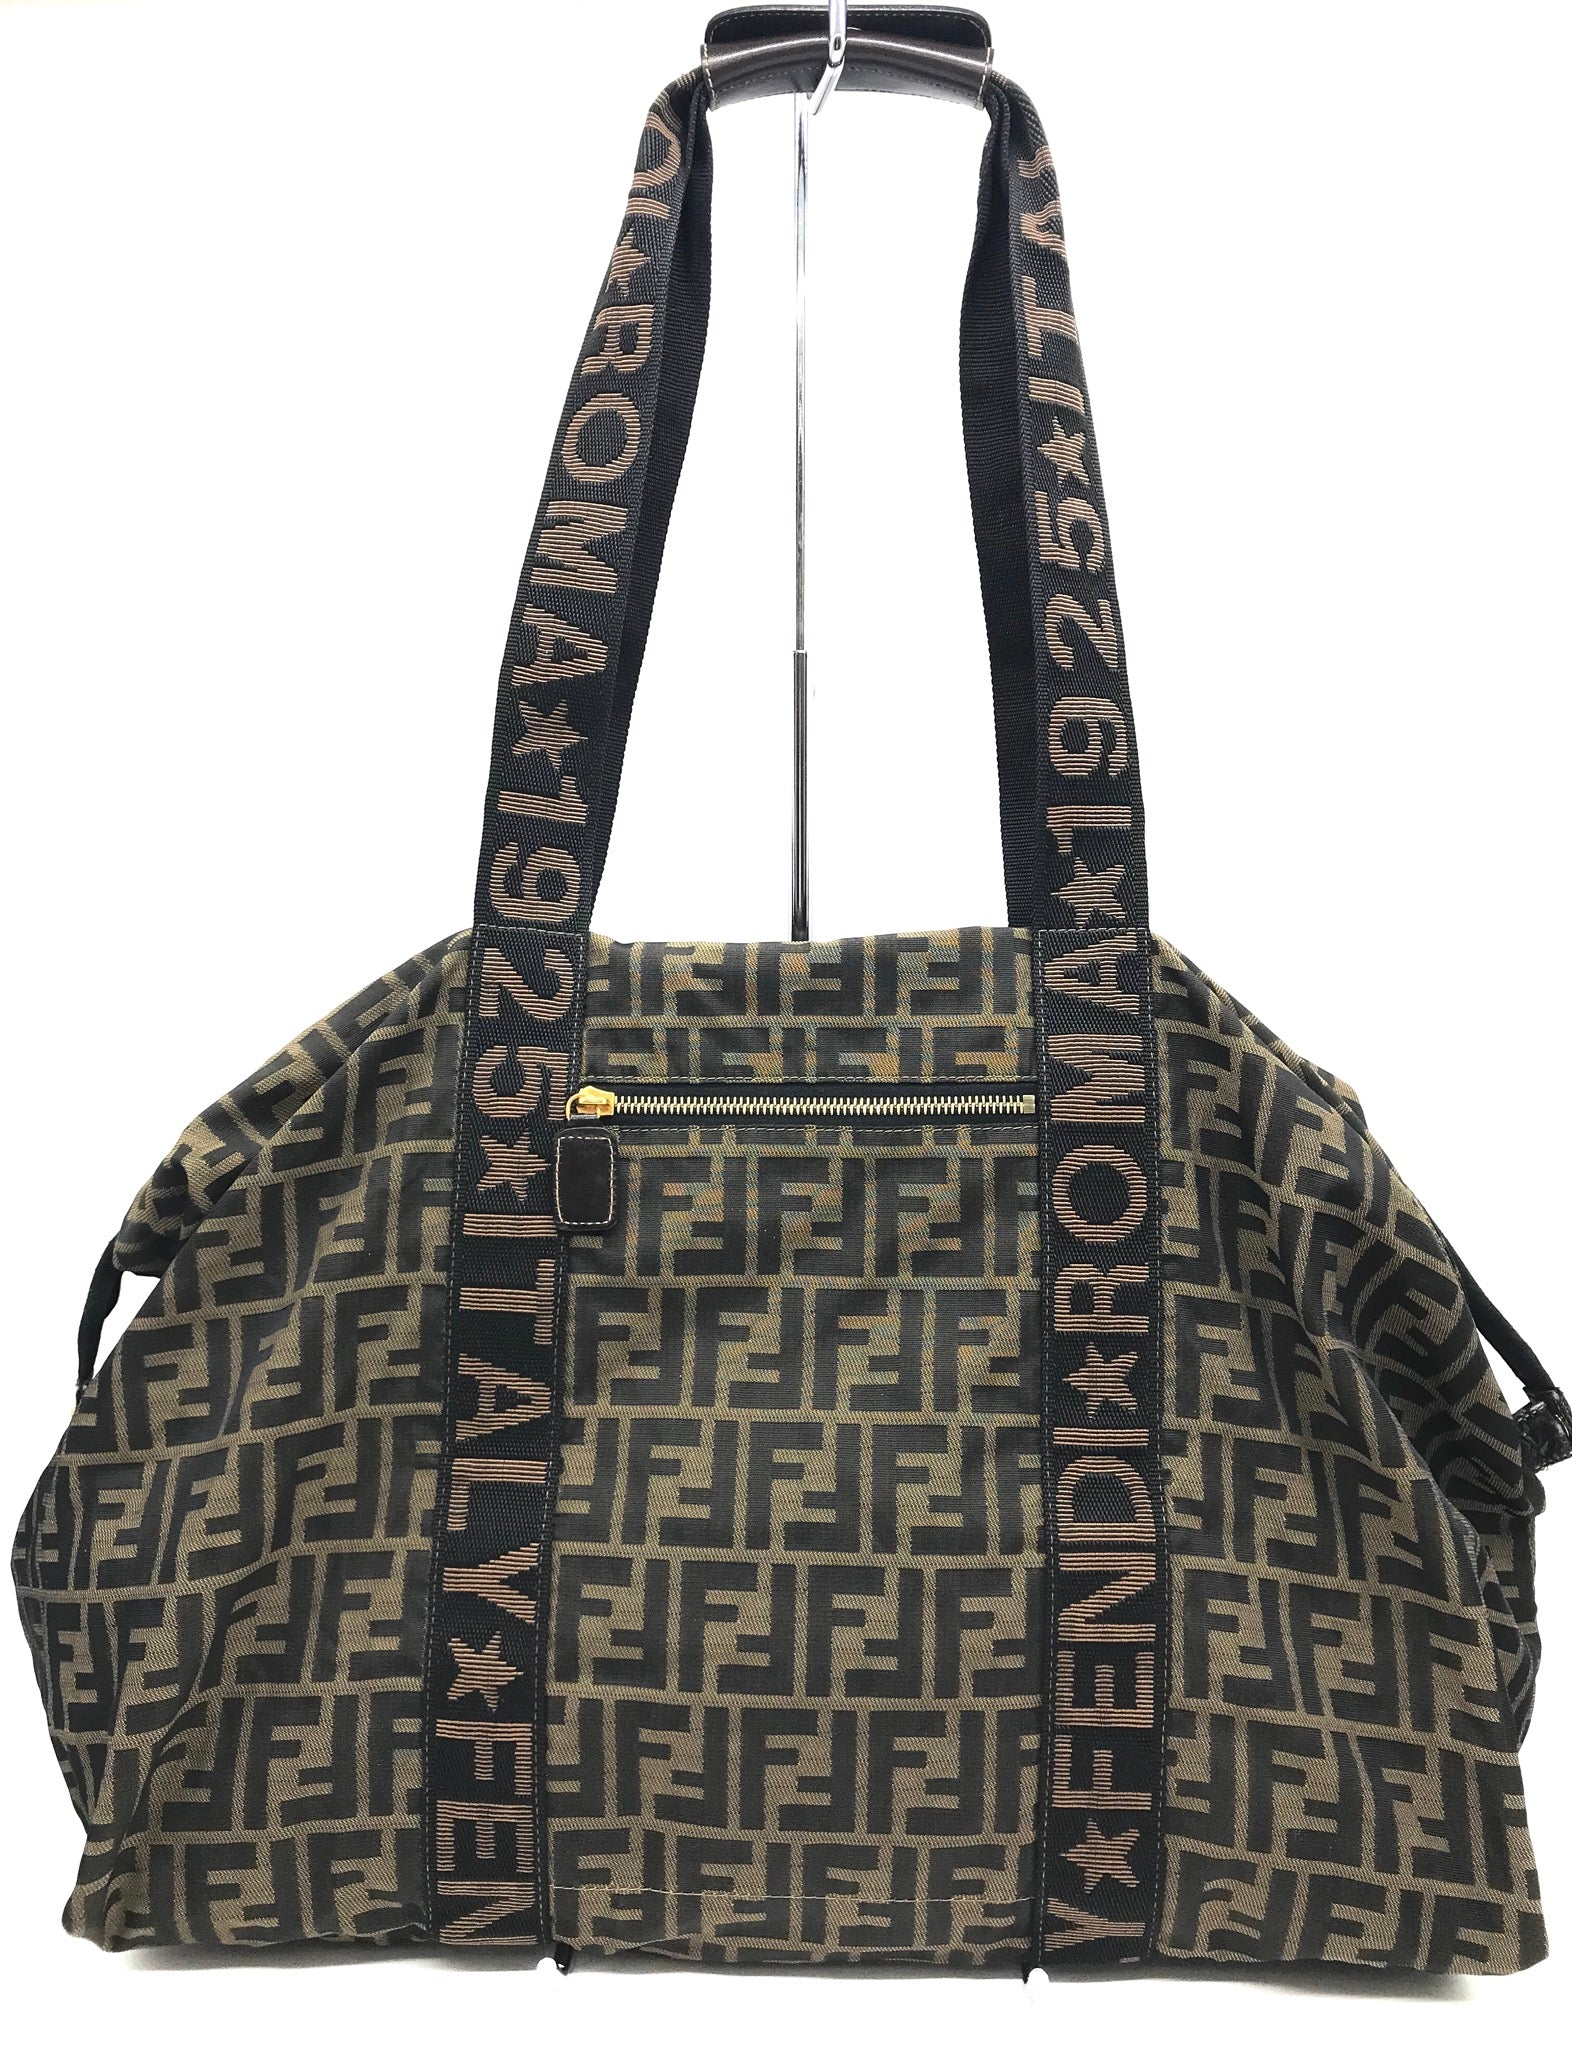 "Primary Photo - BRAND: FENDI <BR>STYLE: HANDBAG DESIGNER <BR>COLOR: MONOGRAM <BR>SIZE: LARGE (APPROX 8.5""W X 18.5""L X 14""H)<BR>SHOULDER DROP: 12""<BR>SKU: 262-26275-65304<BR>LOSS SNAGS IN THE INTERIOR. OVER ALL THE BAG IS IN GOOD SHAPE AND CONDITION.<BR>"